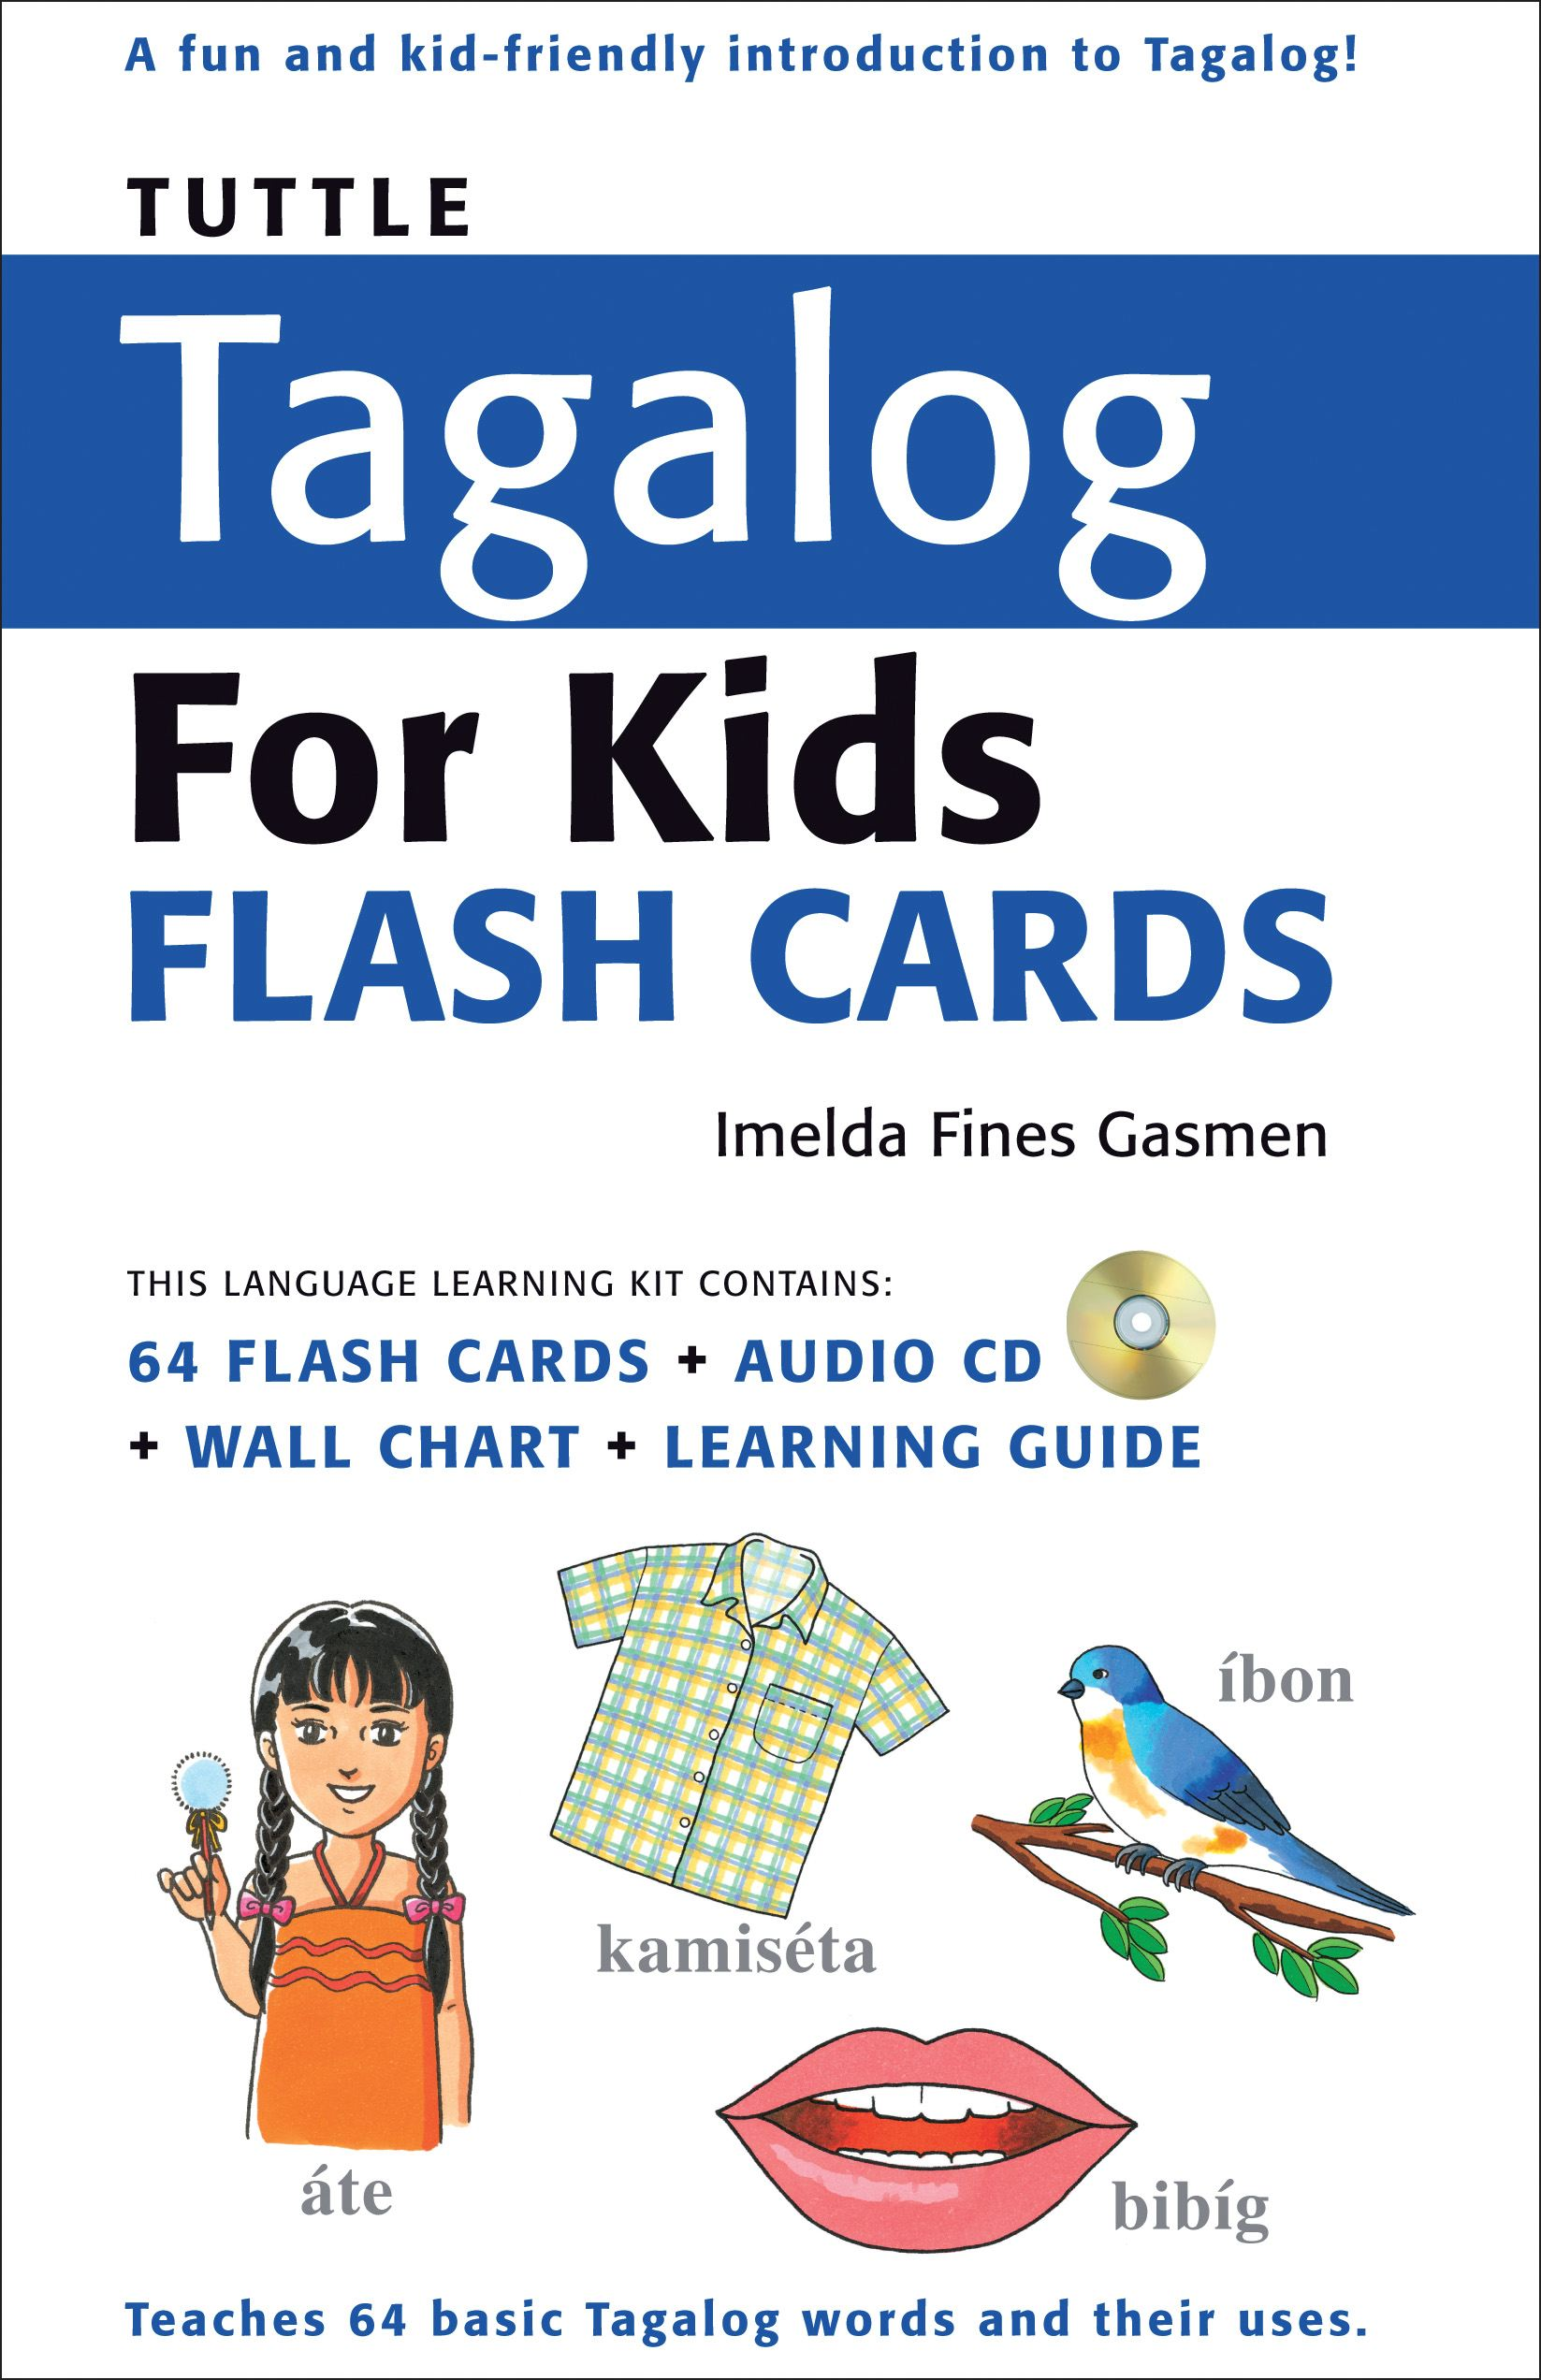 Tuttle-tagalog-for-kids-flash-cards-kit-9780804839570_hr